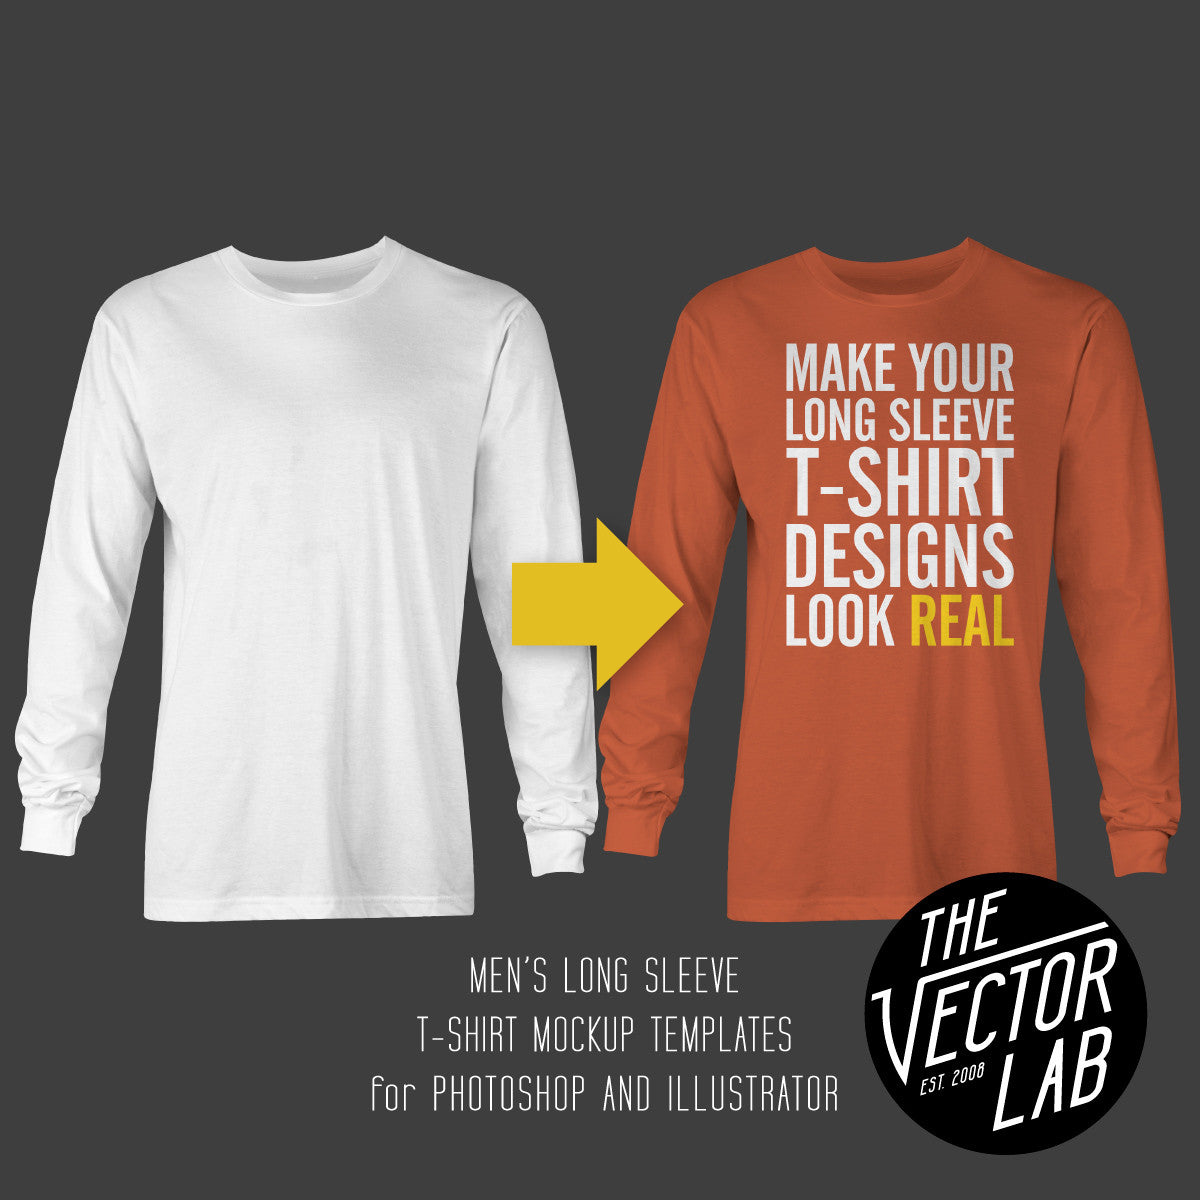 Men\'s Long Sleeve T-Shirt Mockup Templates - TheVectorLab